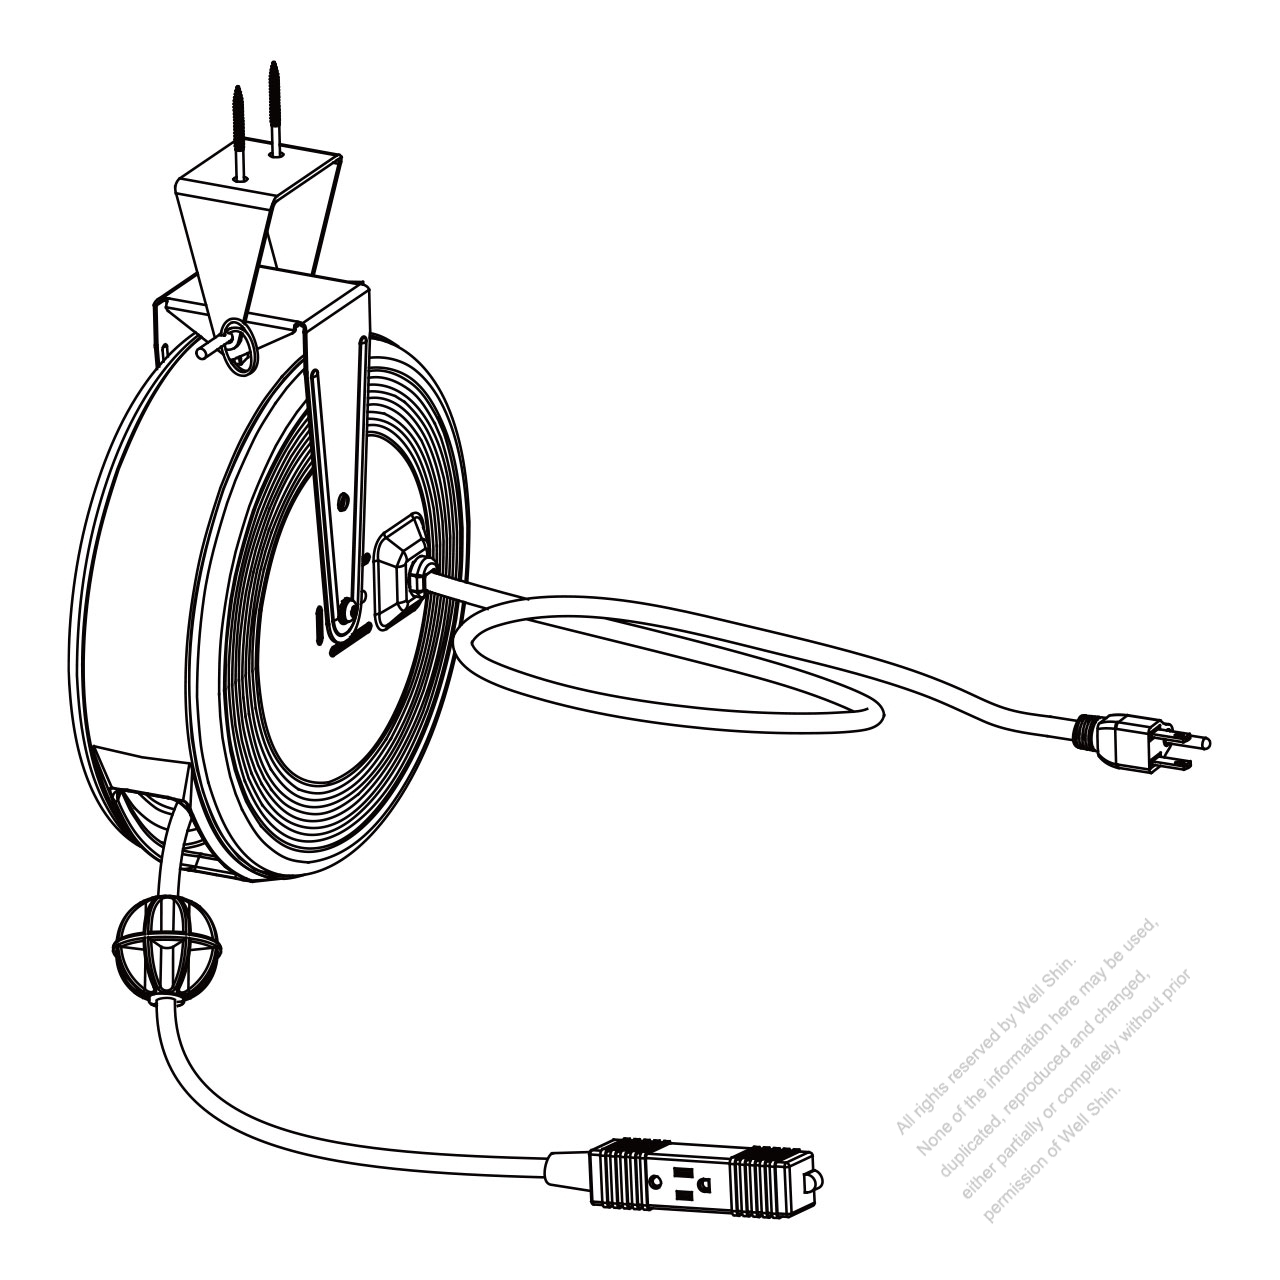 Ceiling Mounting Cord Reel 30 Ft Sjtw Sjt 16awg 3c W